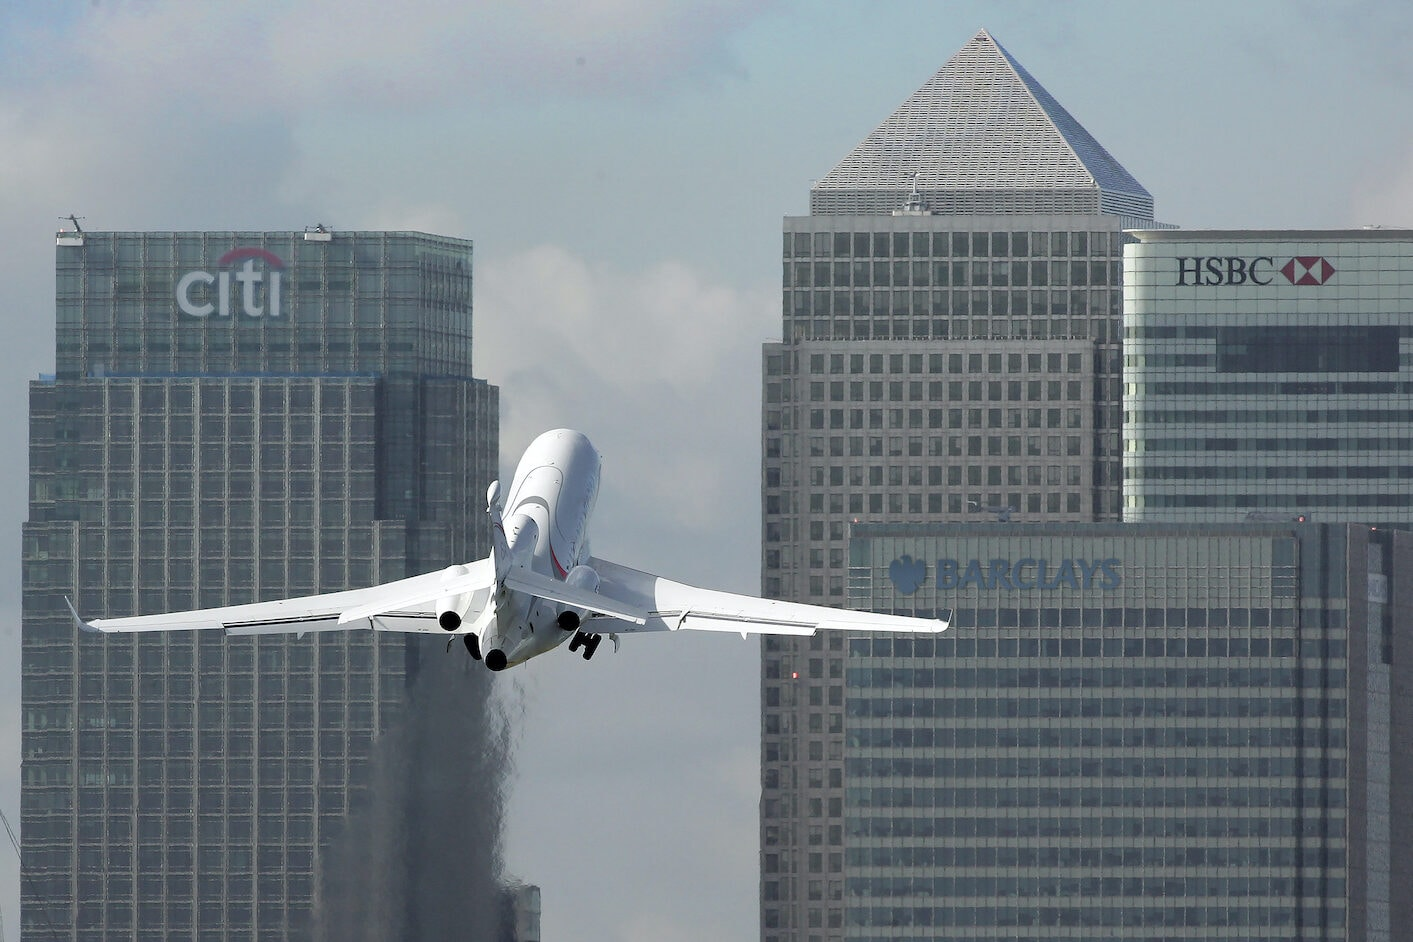 Dassault Falcon 8X take off London city airport. private jet from london to new york